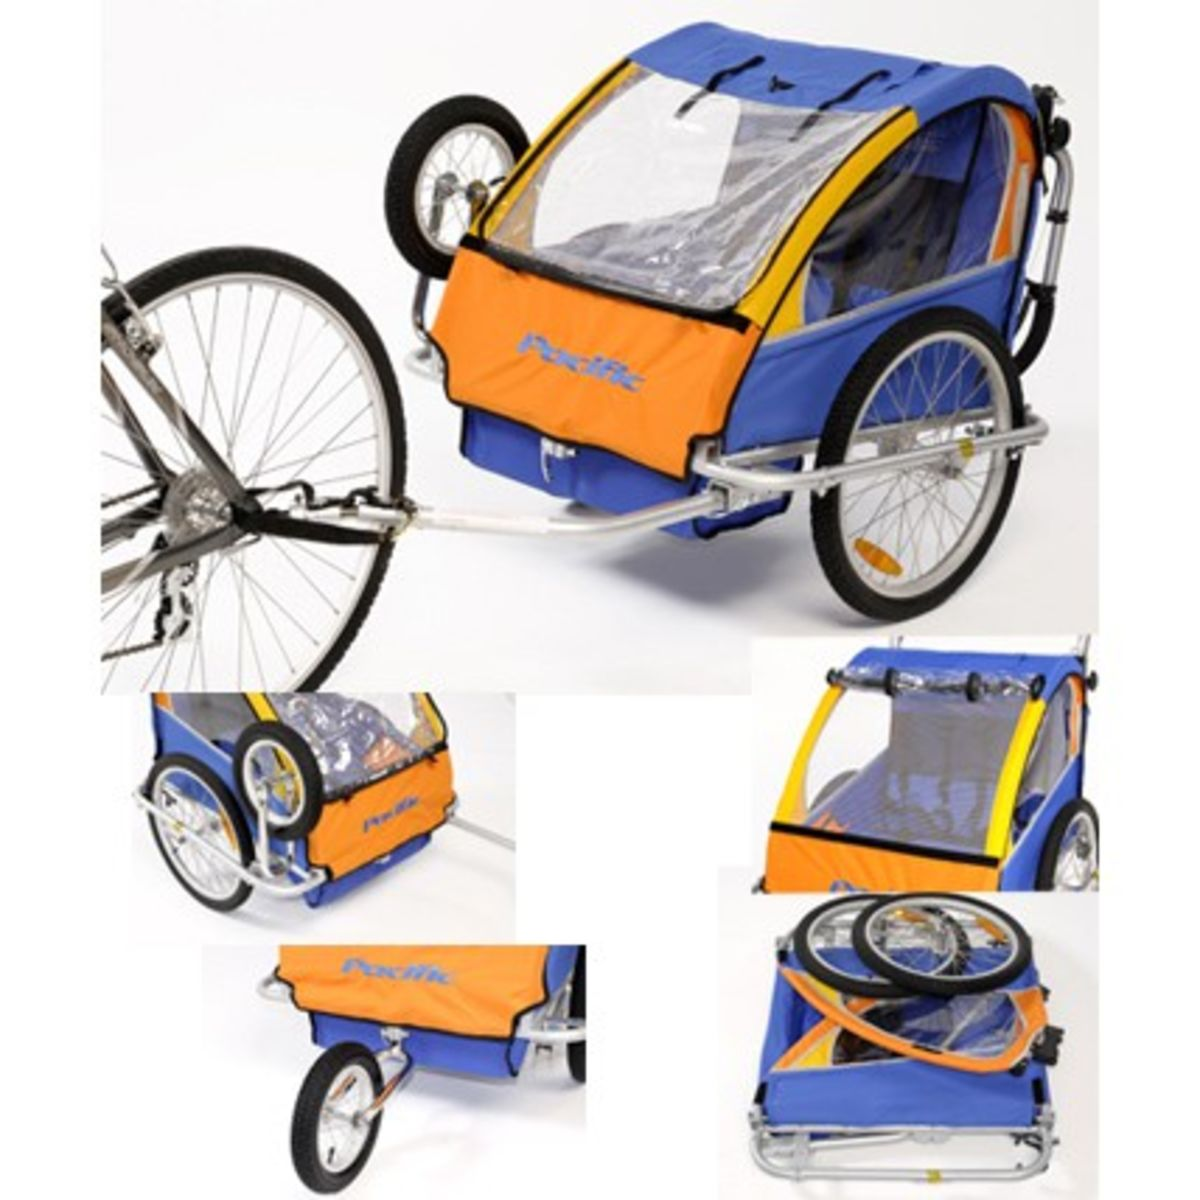 Headline for Best Bike Trailer Jogging Stroller Combos On Sale - Reviews And Ratings